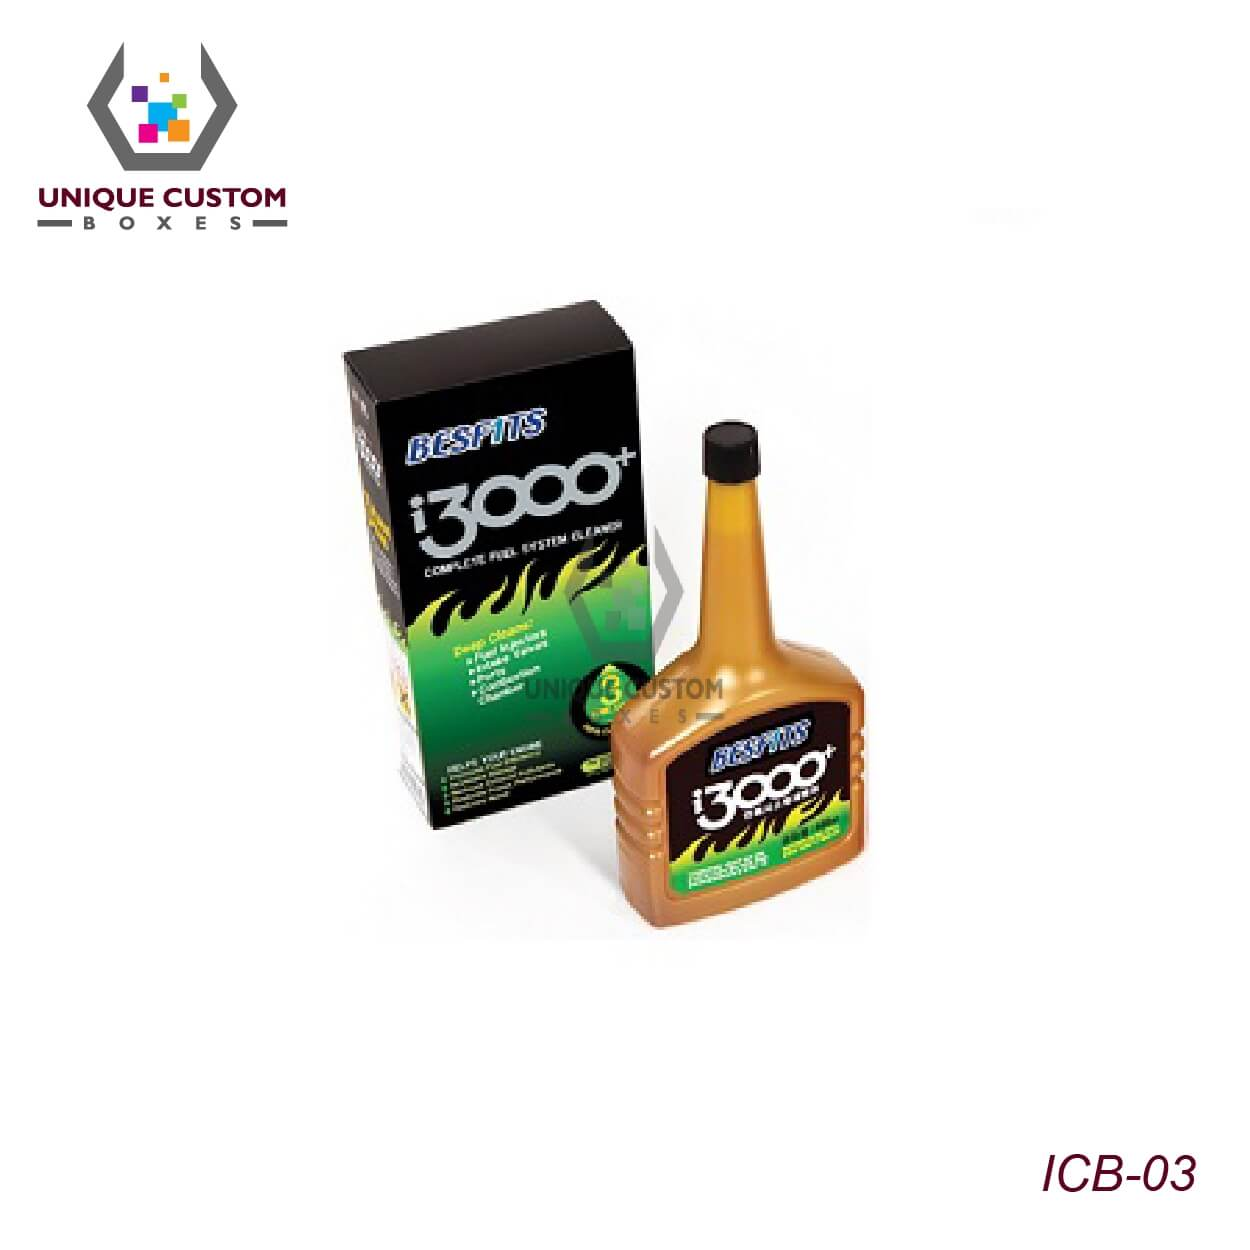 Injector Cleaner Boxes and Labels-3